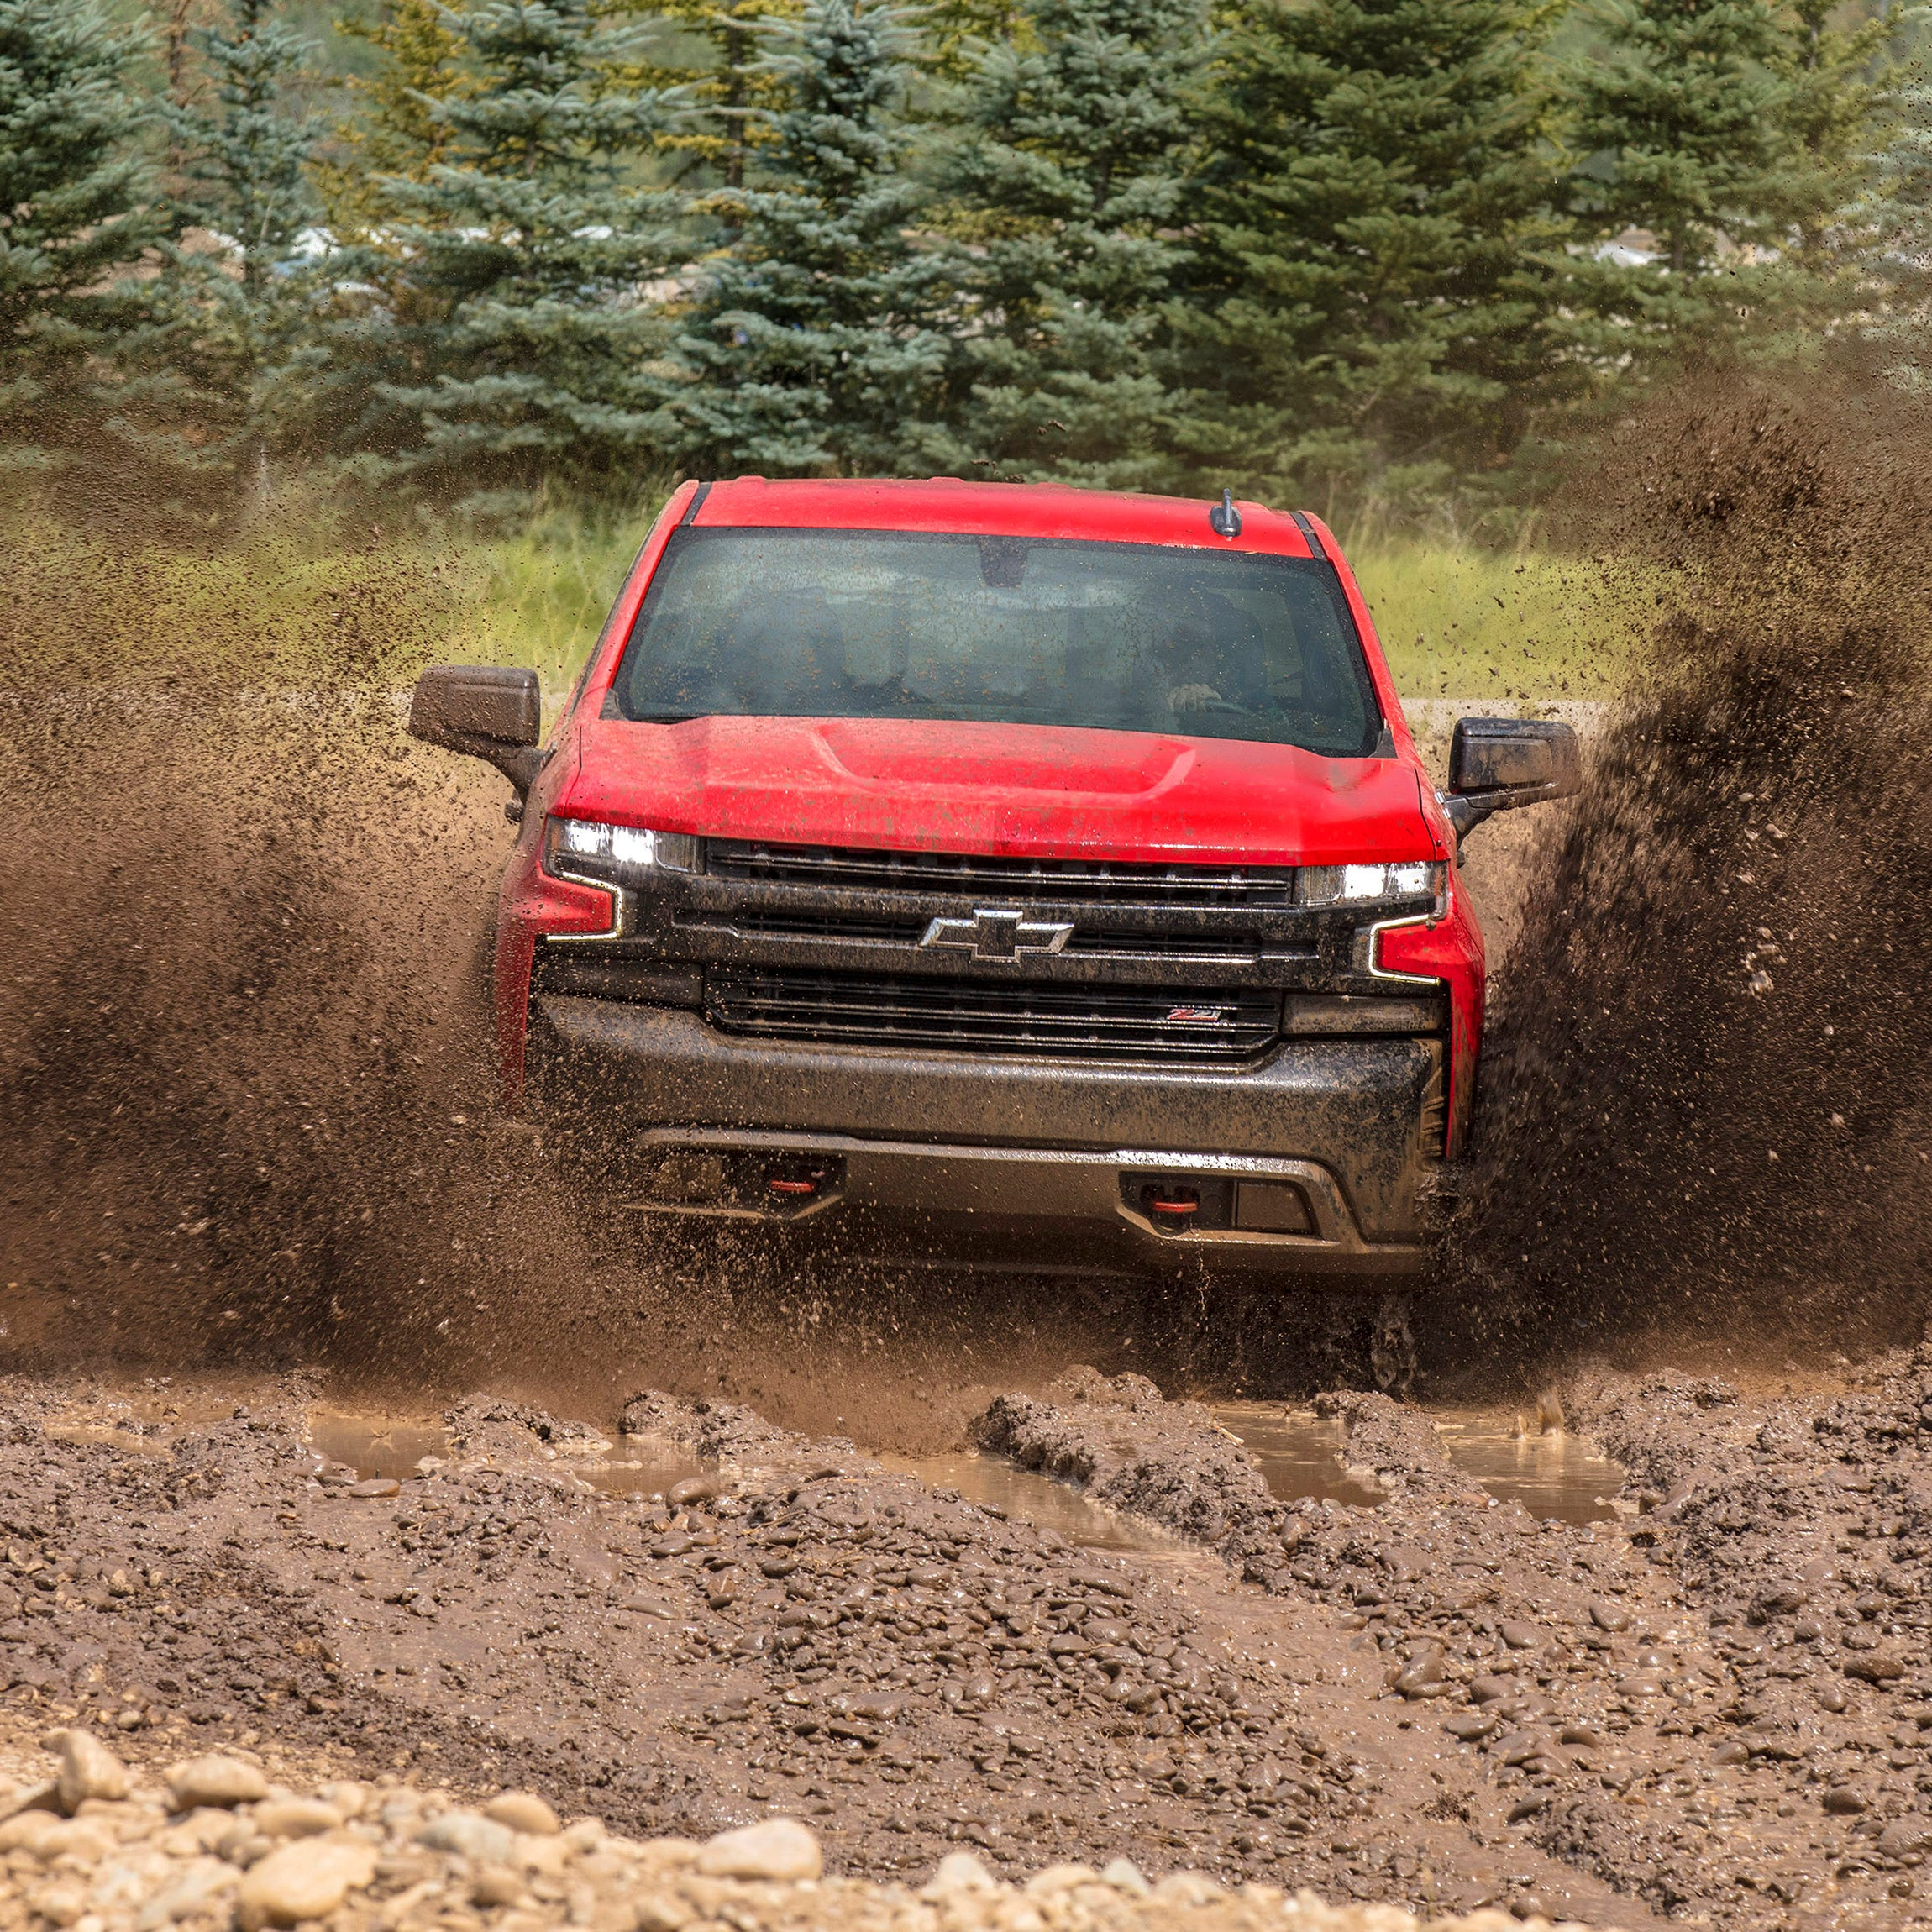 First Drive: 2019 Chevy Silverado has great engineering, OK interior